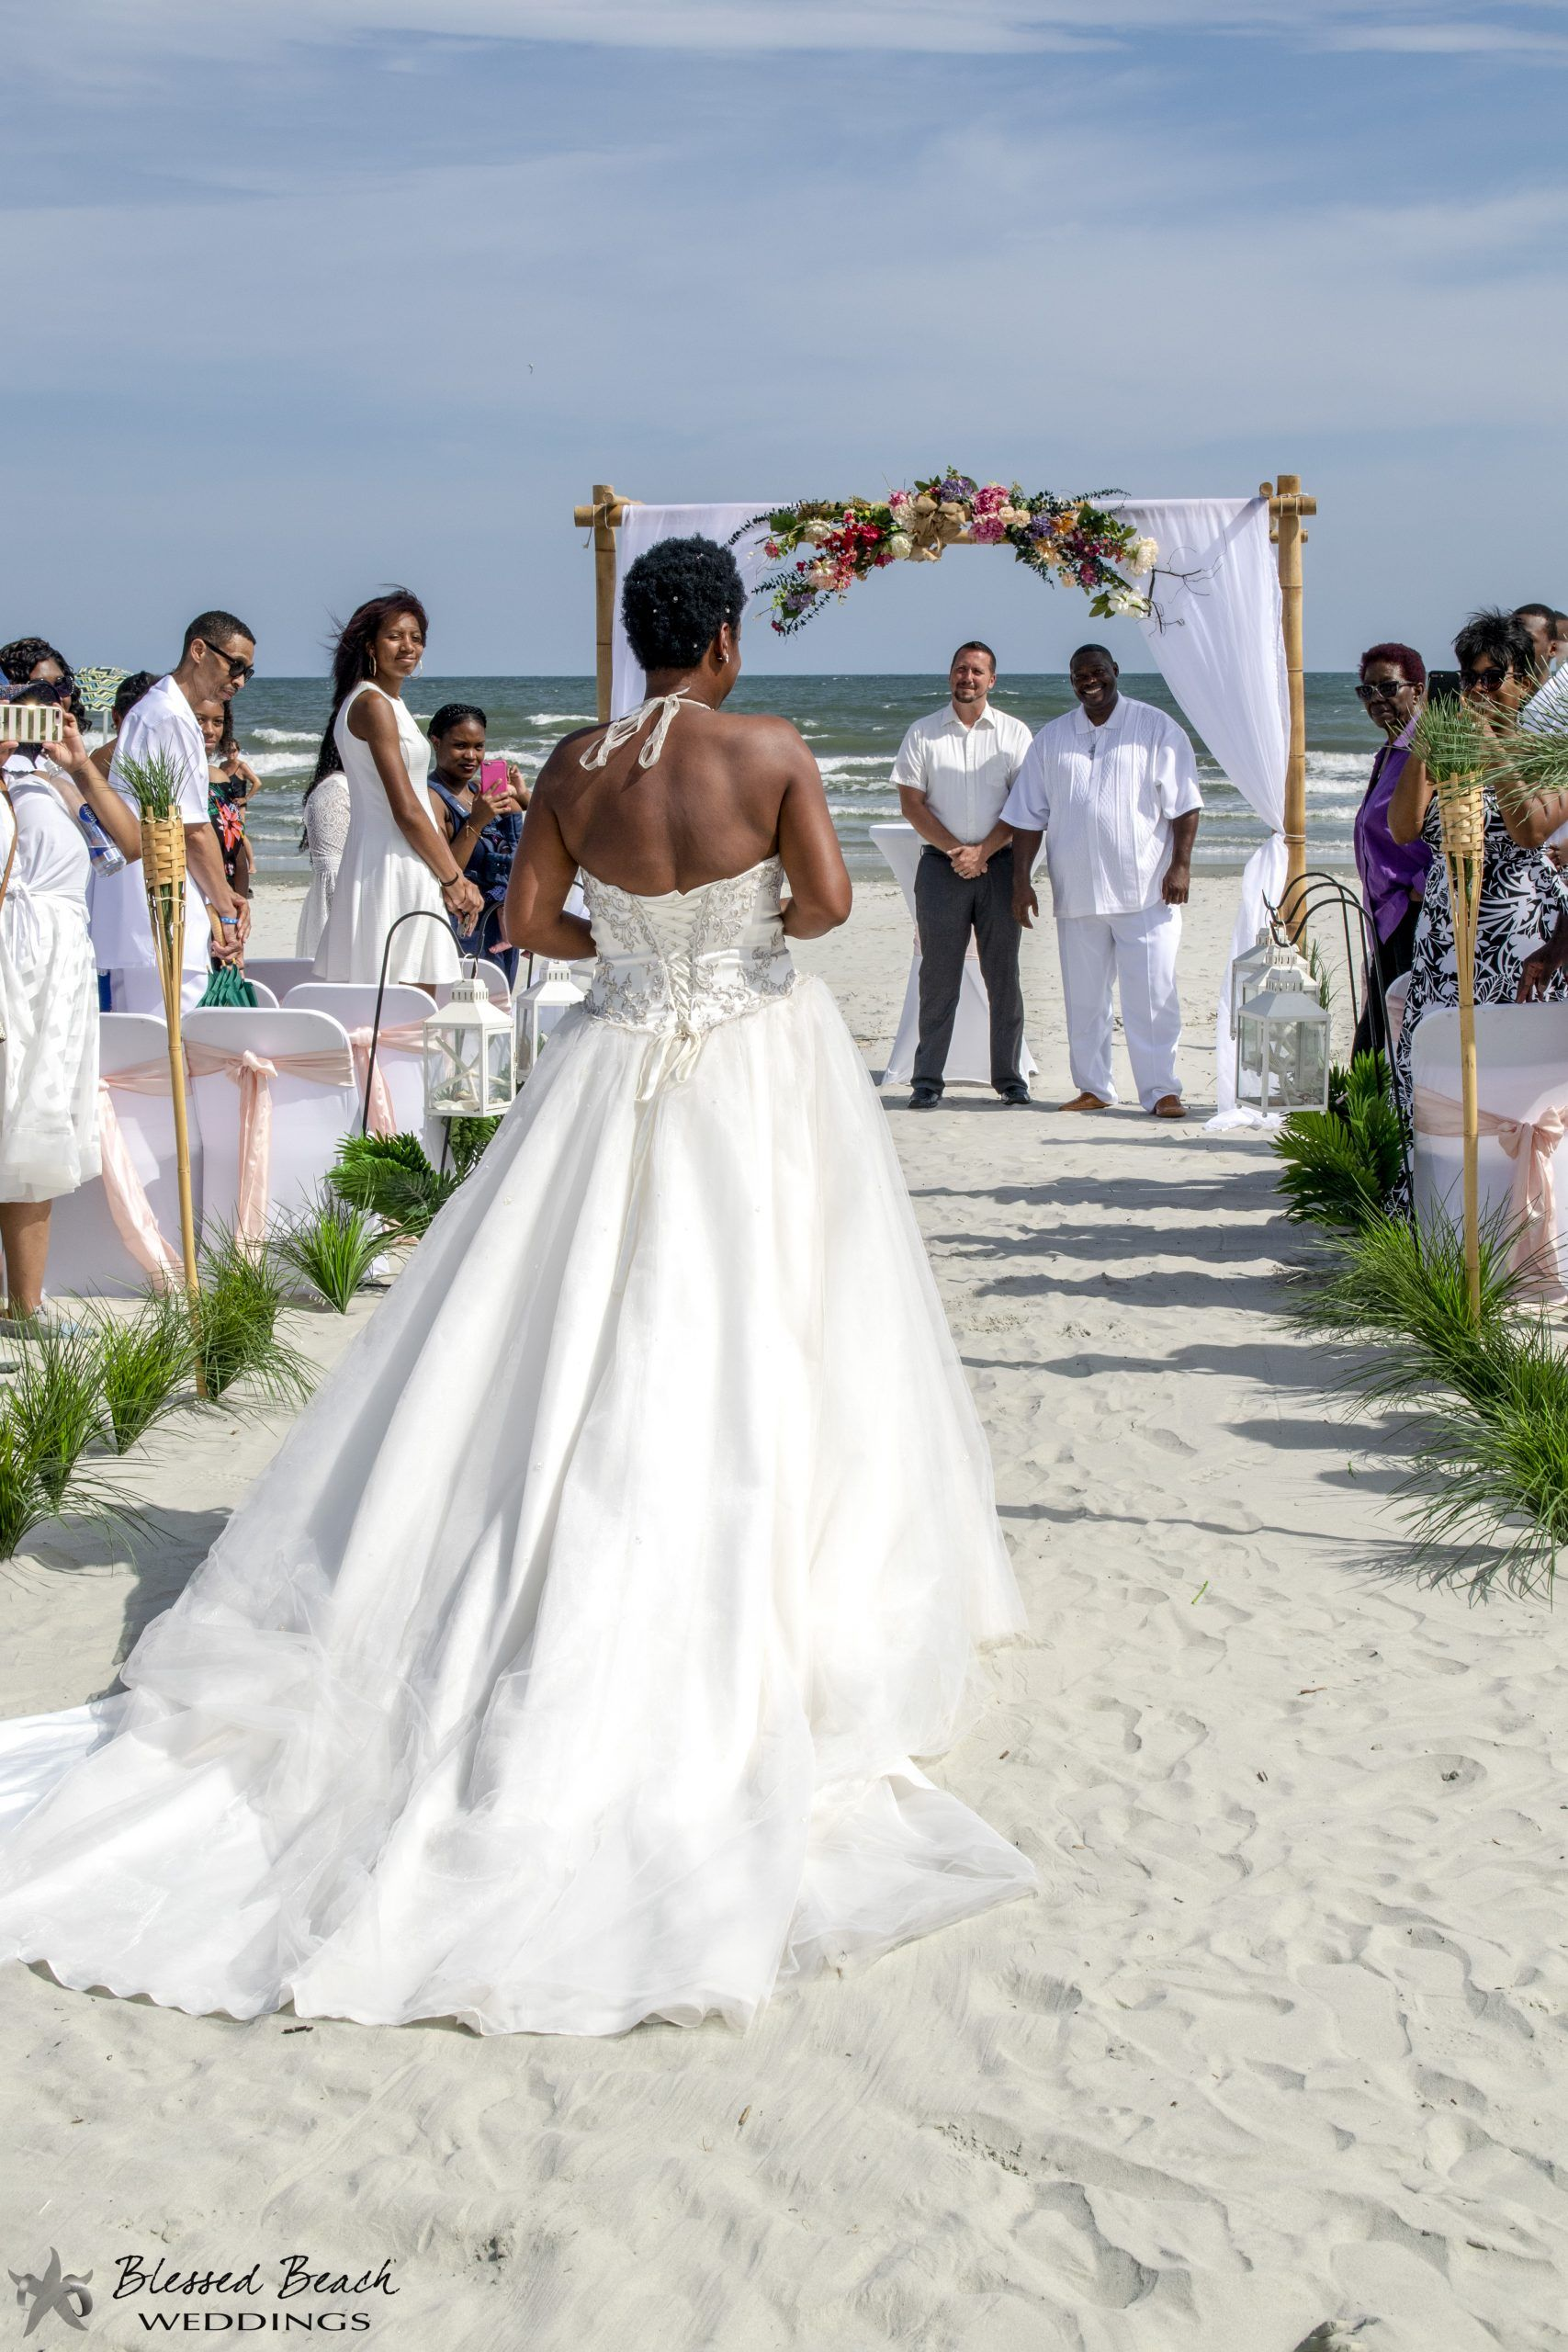 Myrtle Beach Wedding Packages Blessed Beach Weddings In 2020 Myrtle Beach Wedding Beach Wedding Packages Myrtle Beach